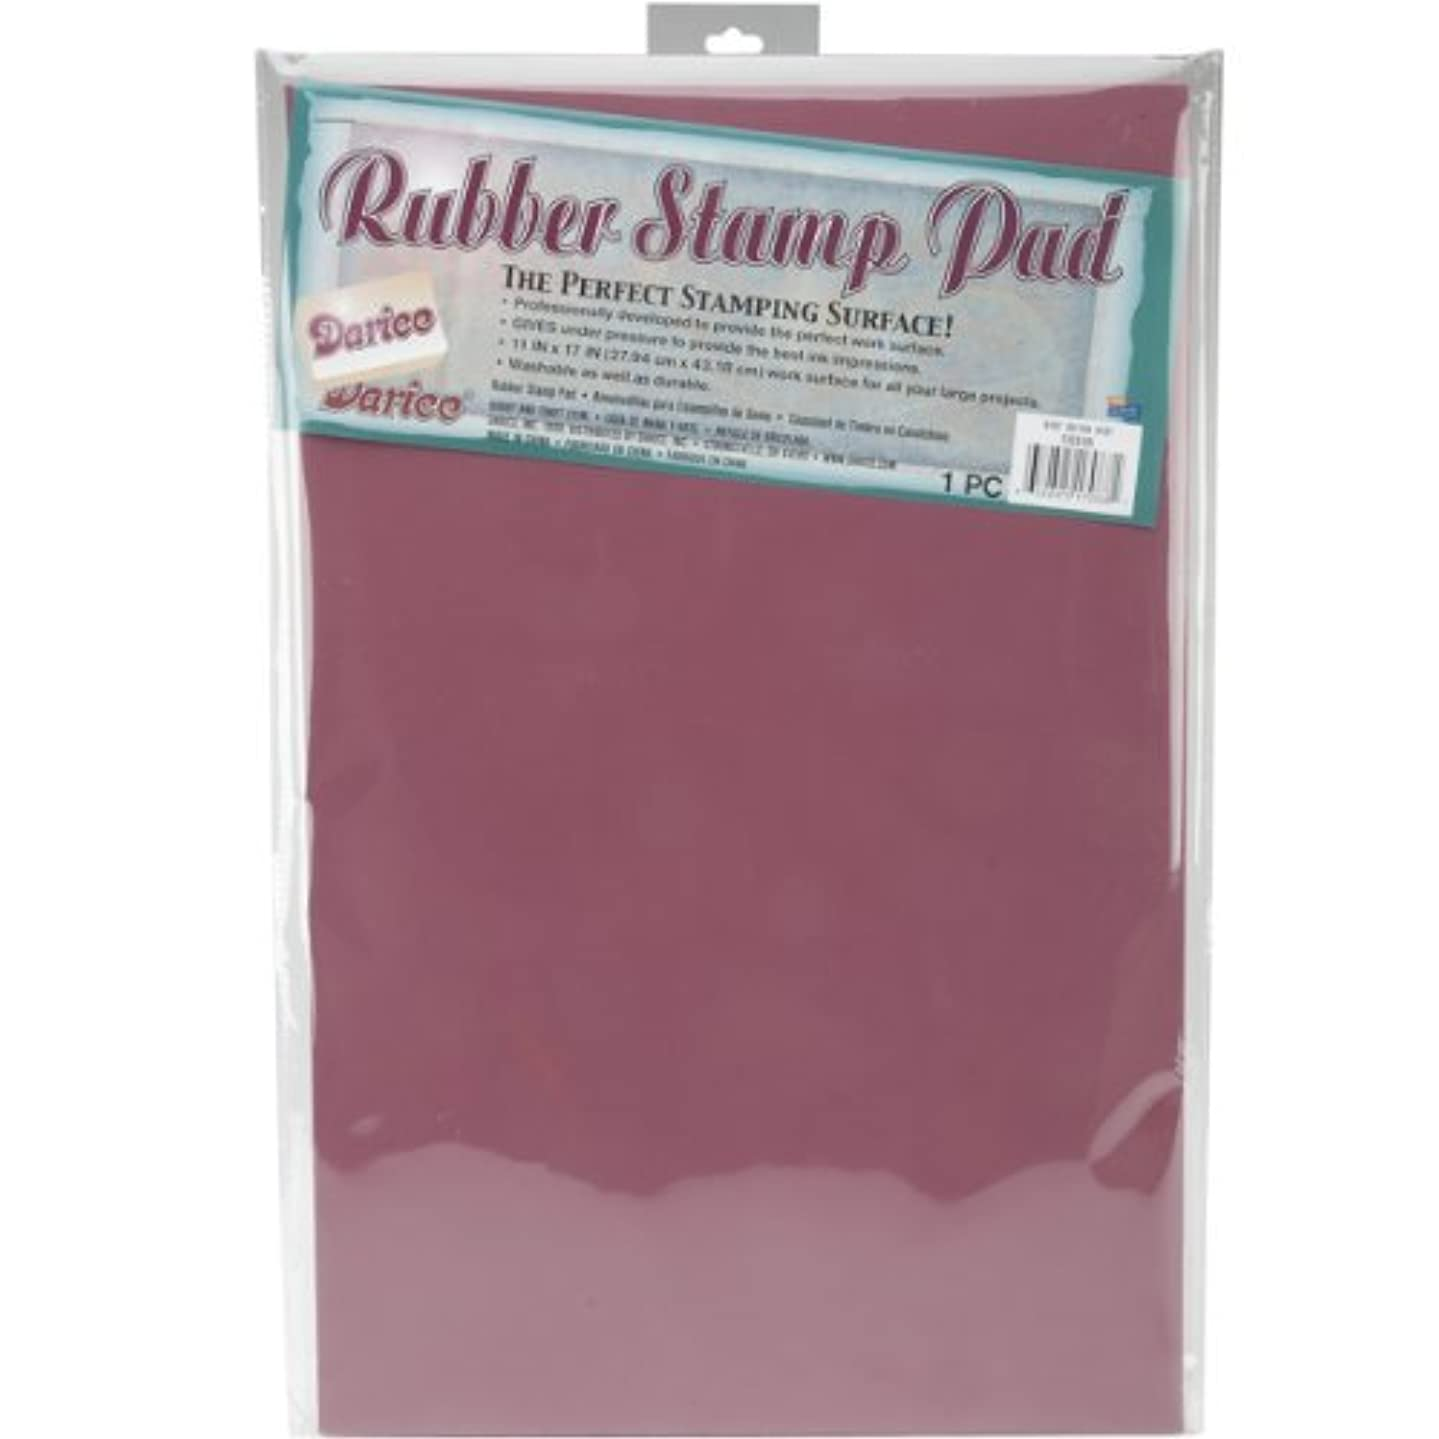 Bulk Buy: Corein.dinations Rubber Stamping Mat 11in. x 17in. (5-Pack)